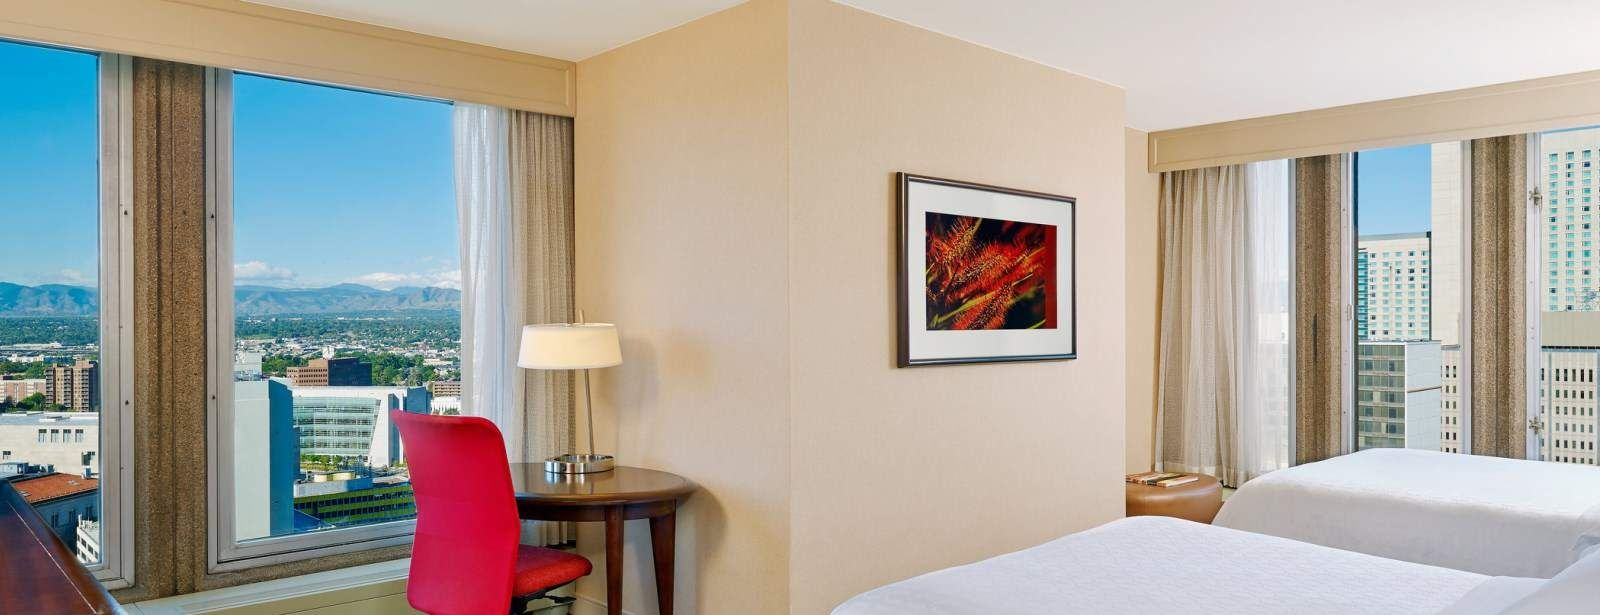 Denver Accommodations - Executive Suite